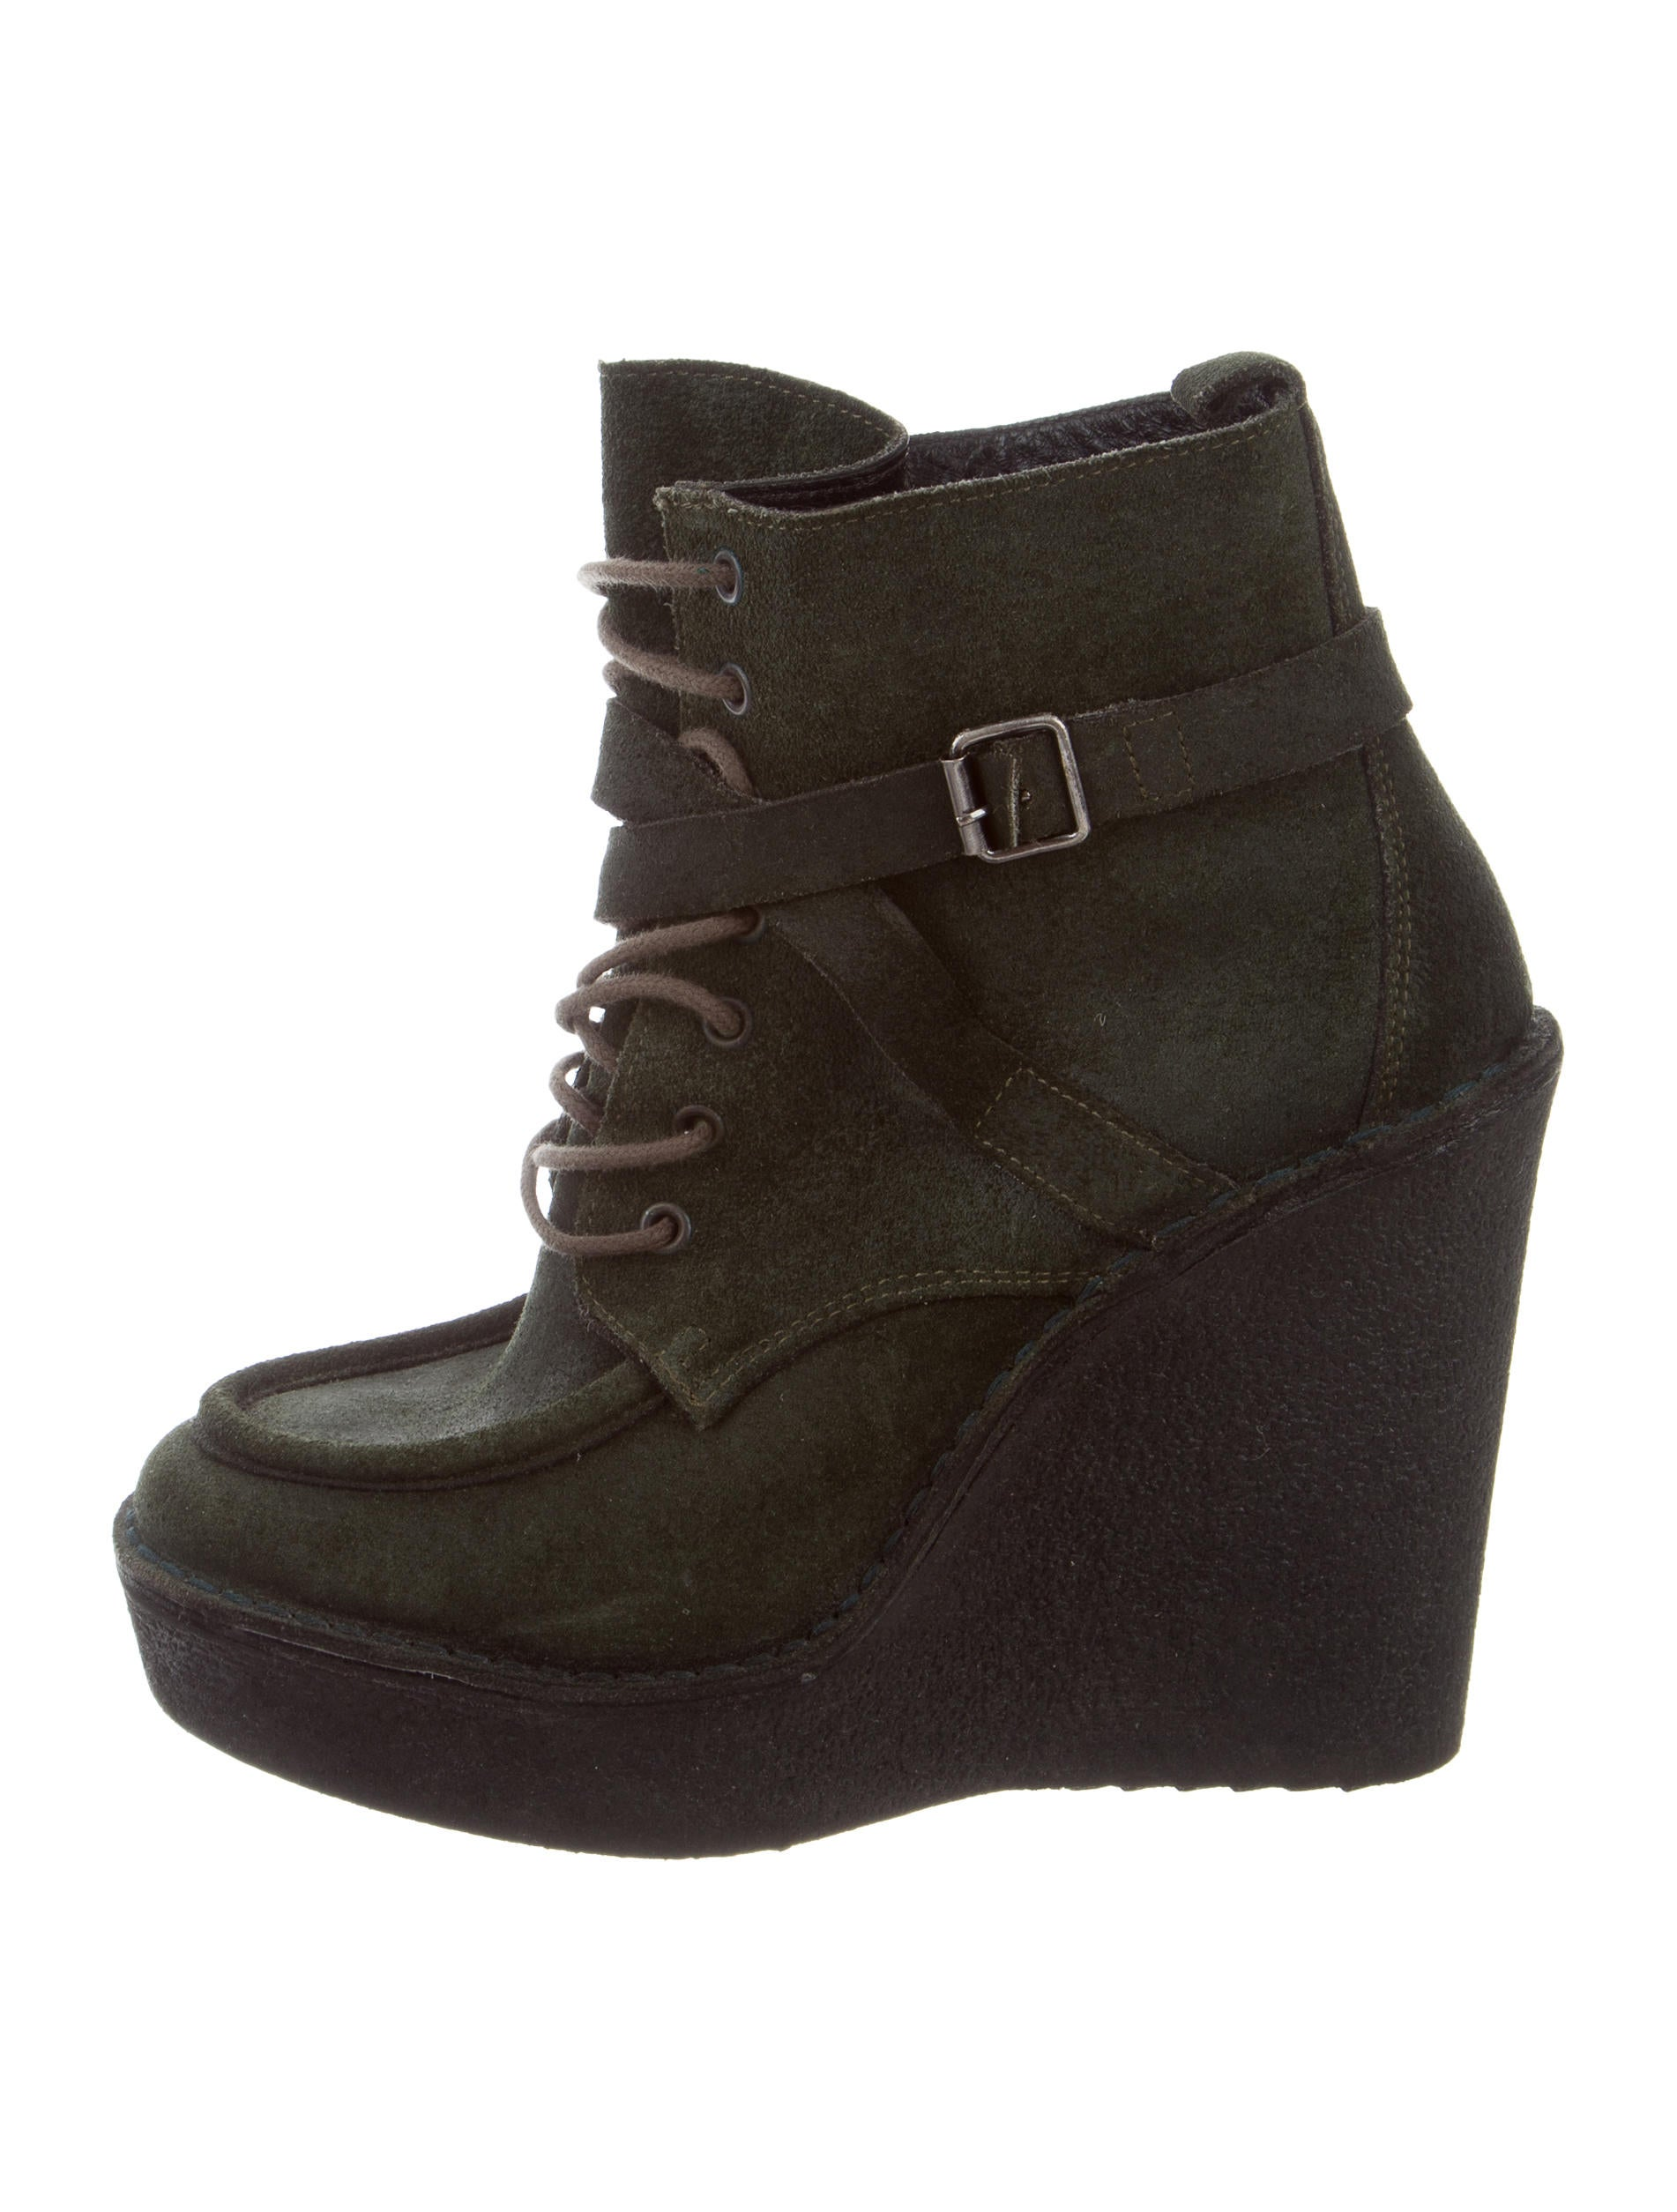 Pierre Hardy Suede Wedge Boots - Shoes